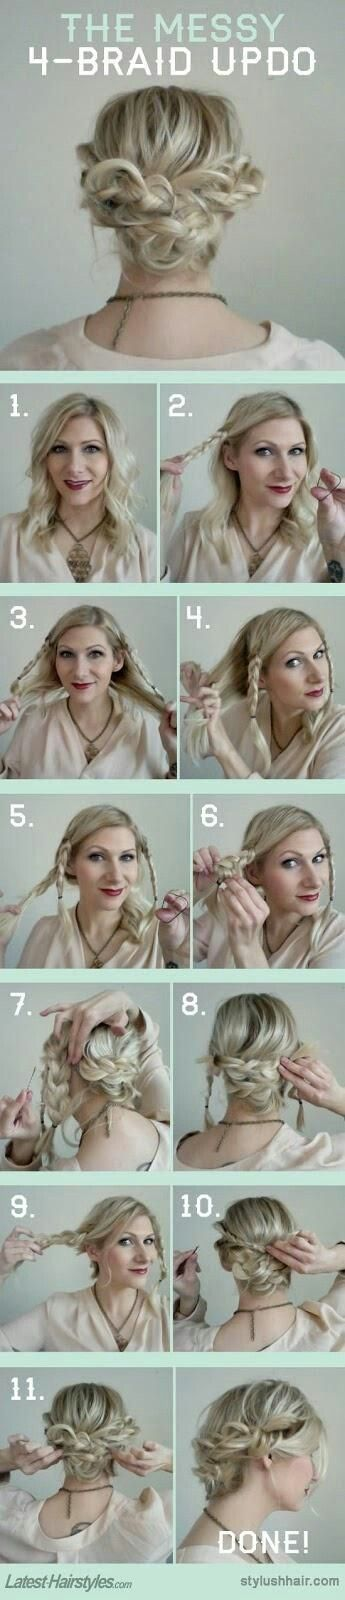 Messy braided updo tutorial for shorter hair